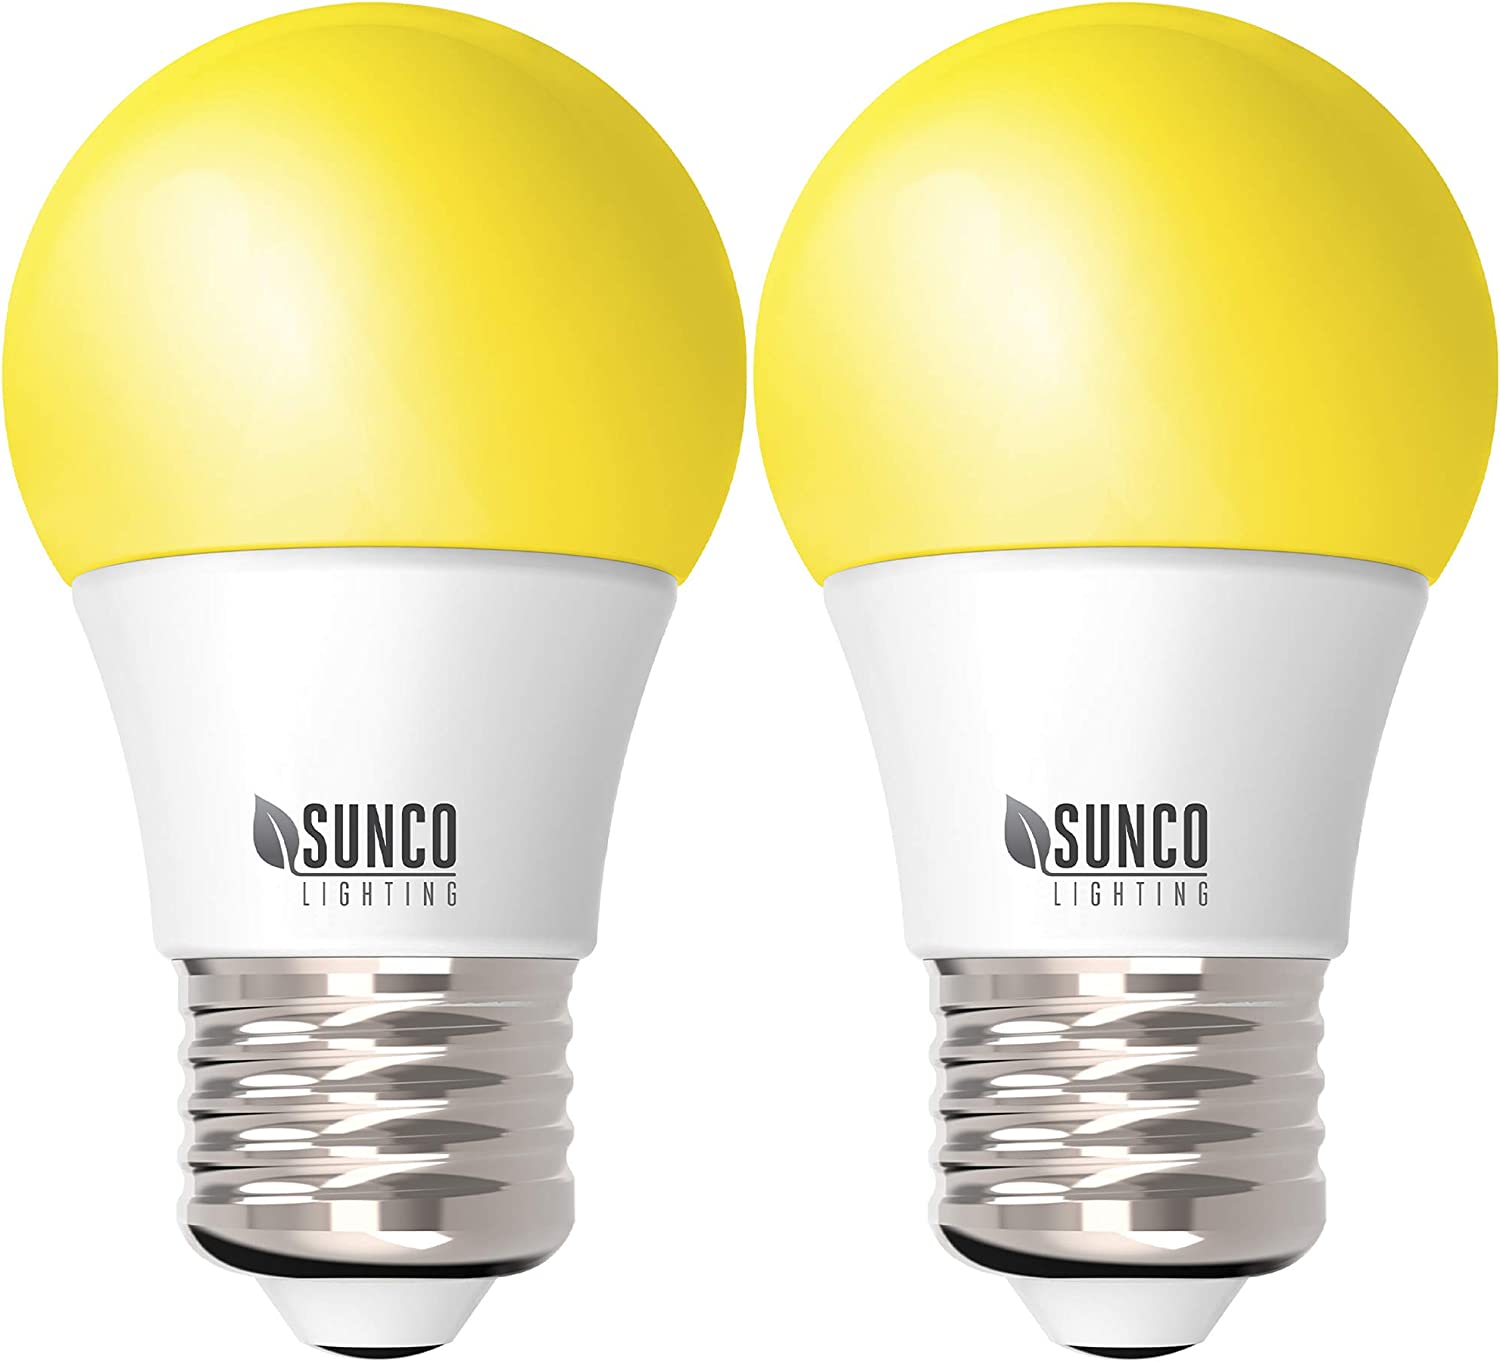 Sunco Lighting A15 LED Bulb, Yellow Light, 8W, Dimmable, Repellent, 2000K Amber Glow, Ideal for Outdoor Patio, Deck, Backyard, Porch, String Lights - 2 Pack